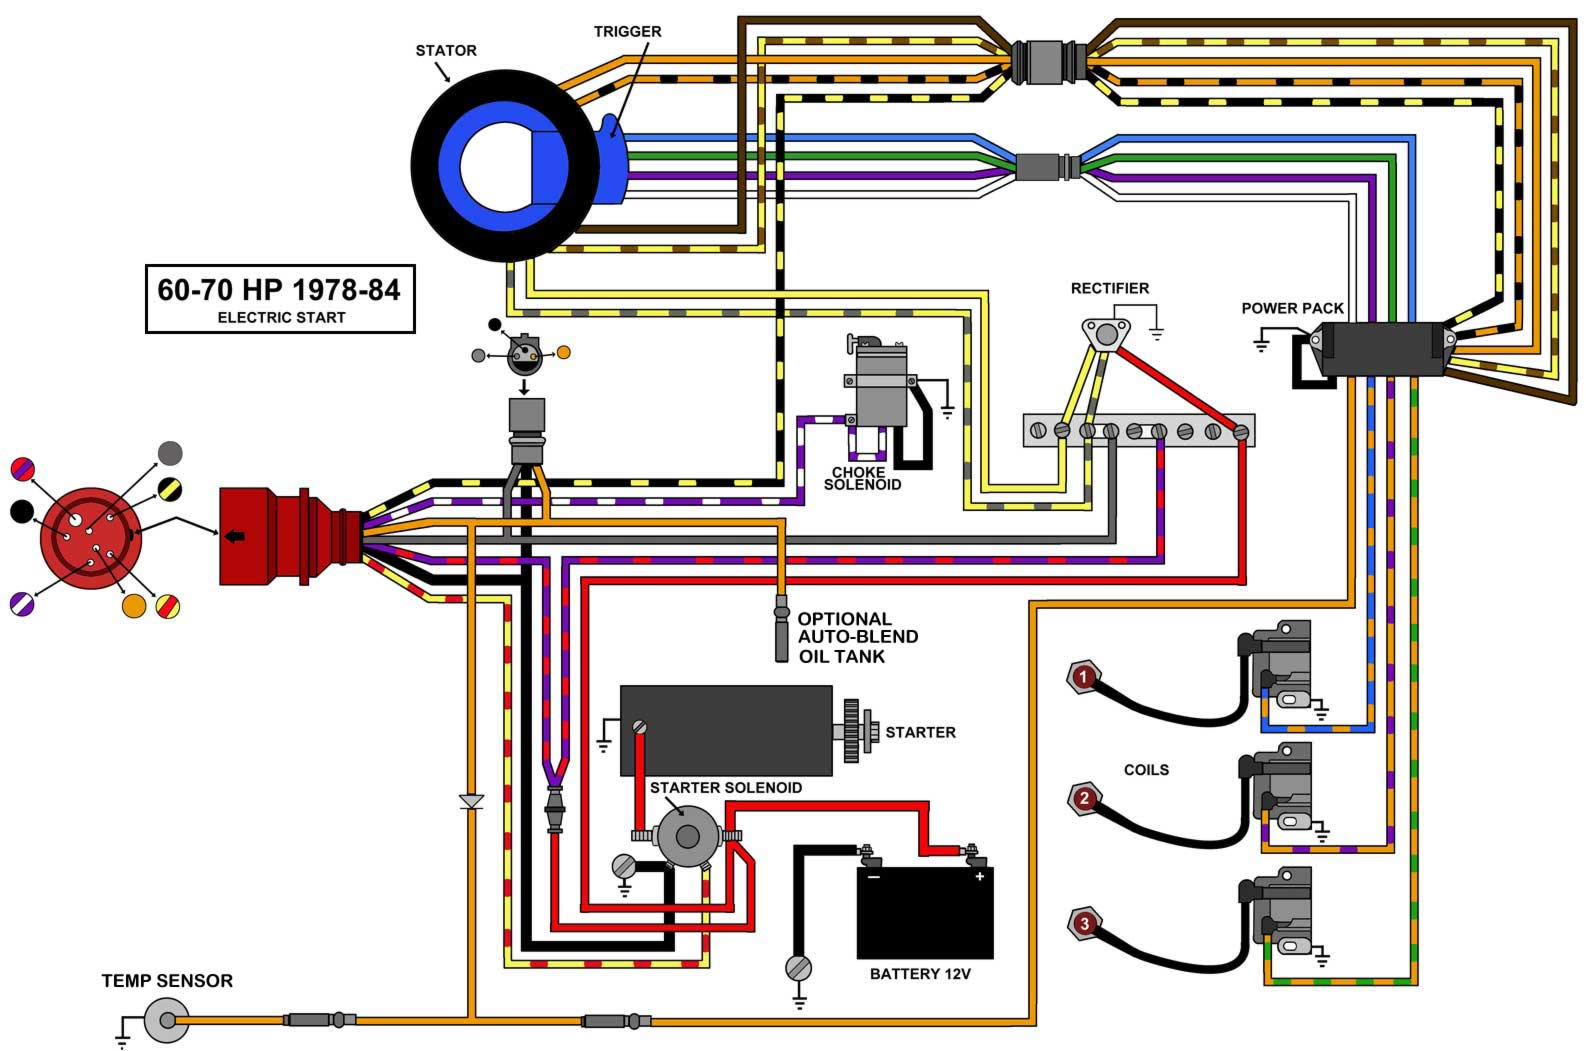 78 84_3 CYL_EL wiring tach from johnson controls page 1 iboats boating forums omc wiring harness diagram at virtualis.co